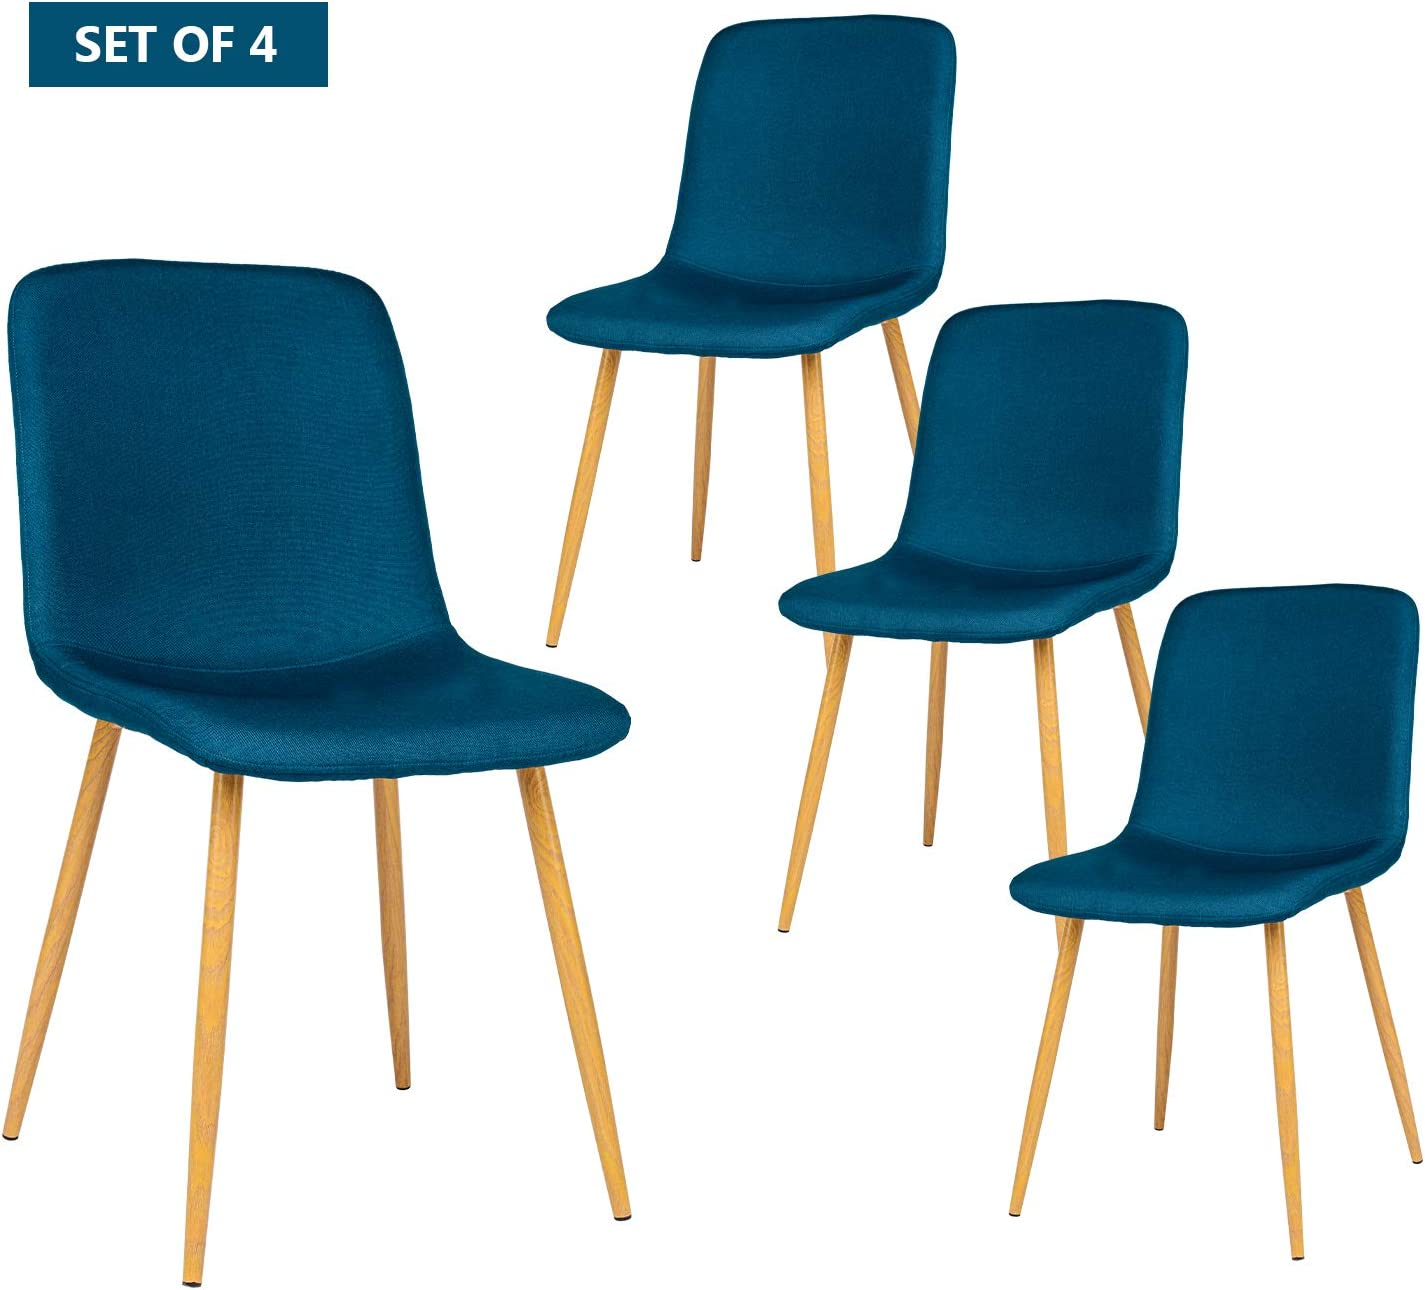 BAHOM Set of 4 Kitchen Dining Chairs, Mid Century Modern Upholstered Chair for Kitchen, Dining, Bedroom, Living Room Light Blue